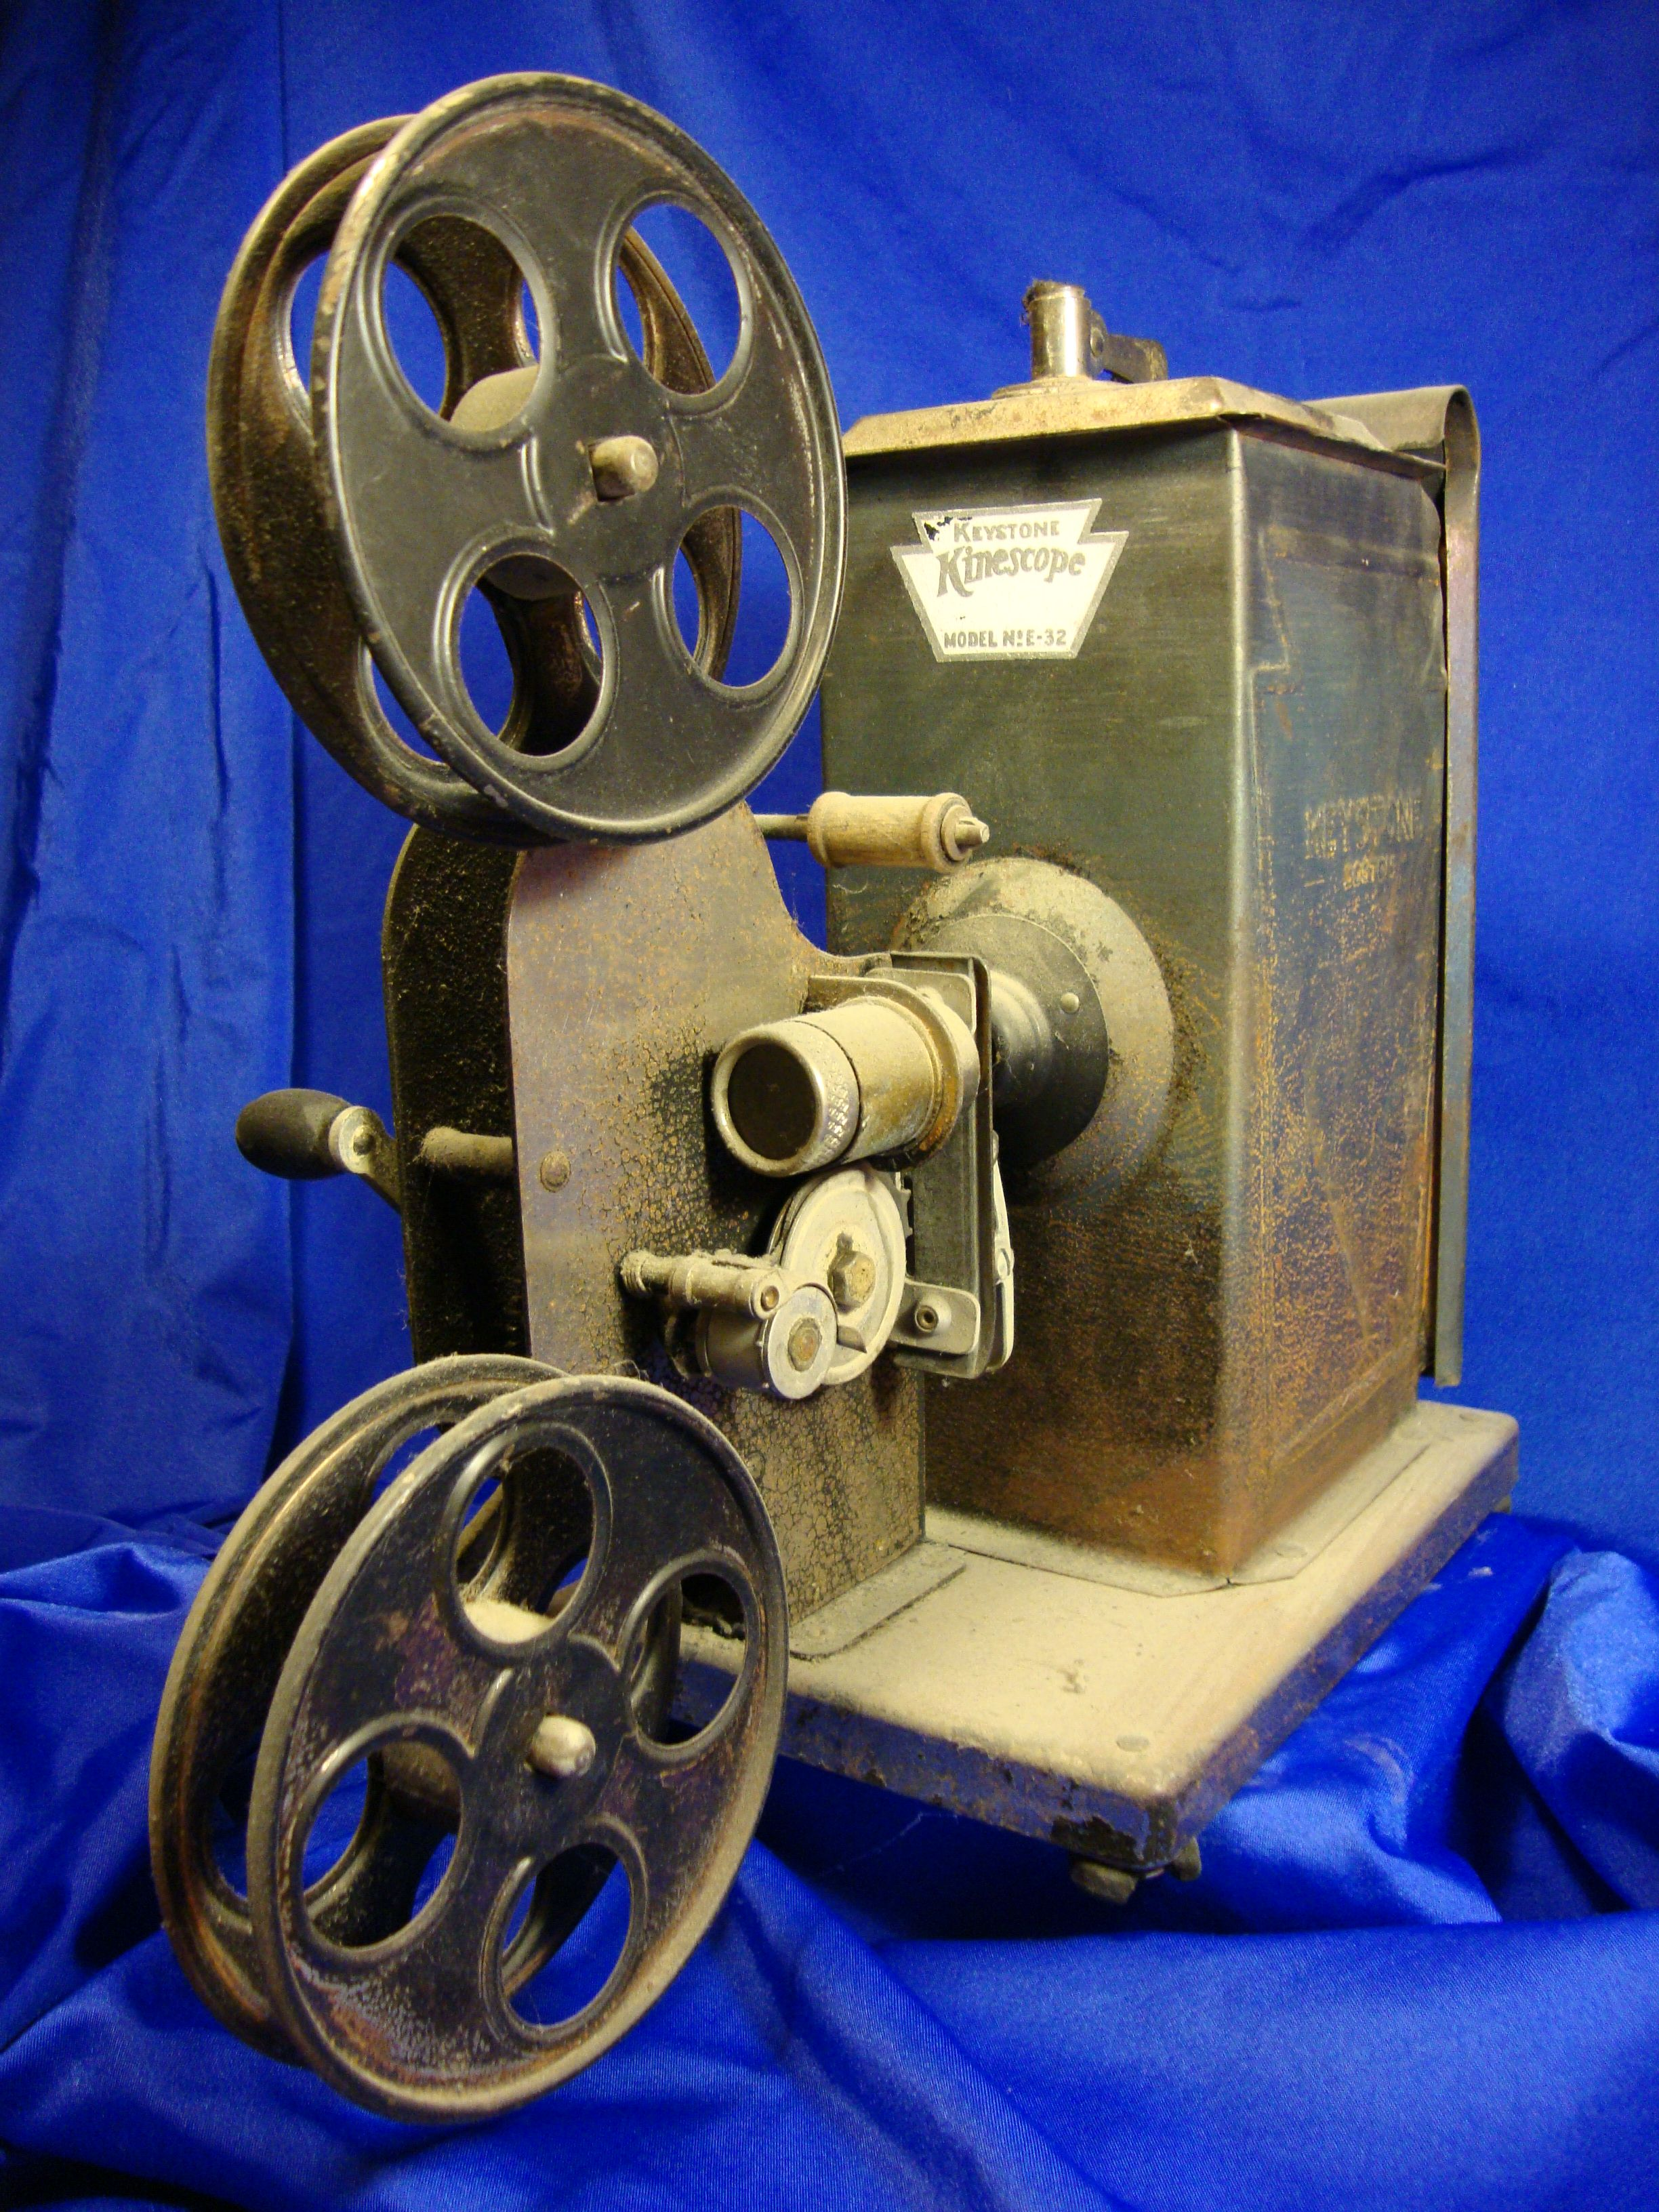 Keystone 16mm Film Projector - families ordered